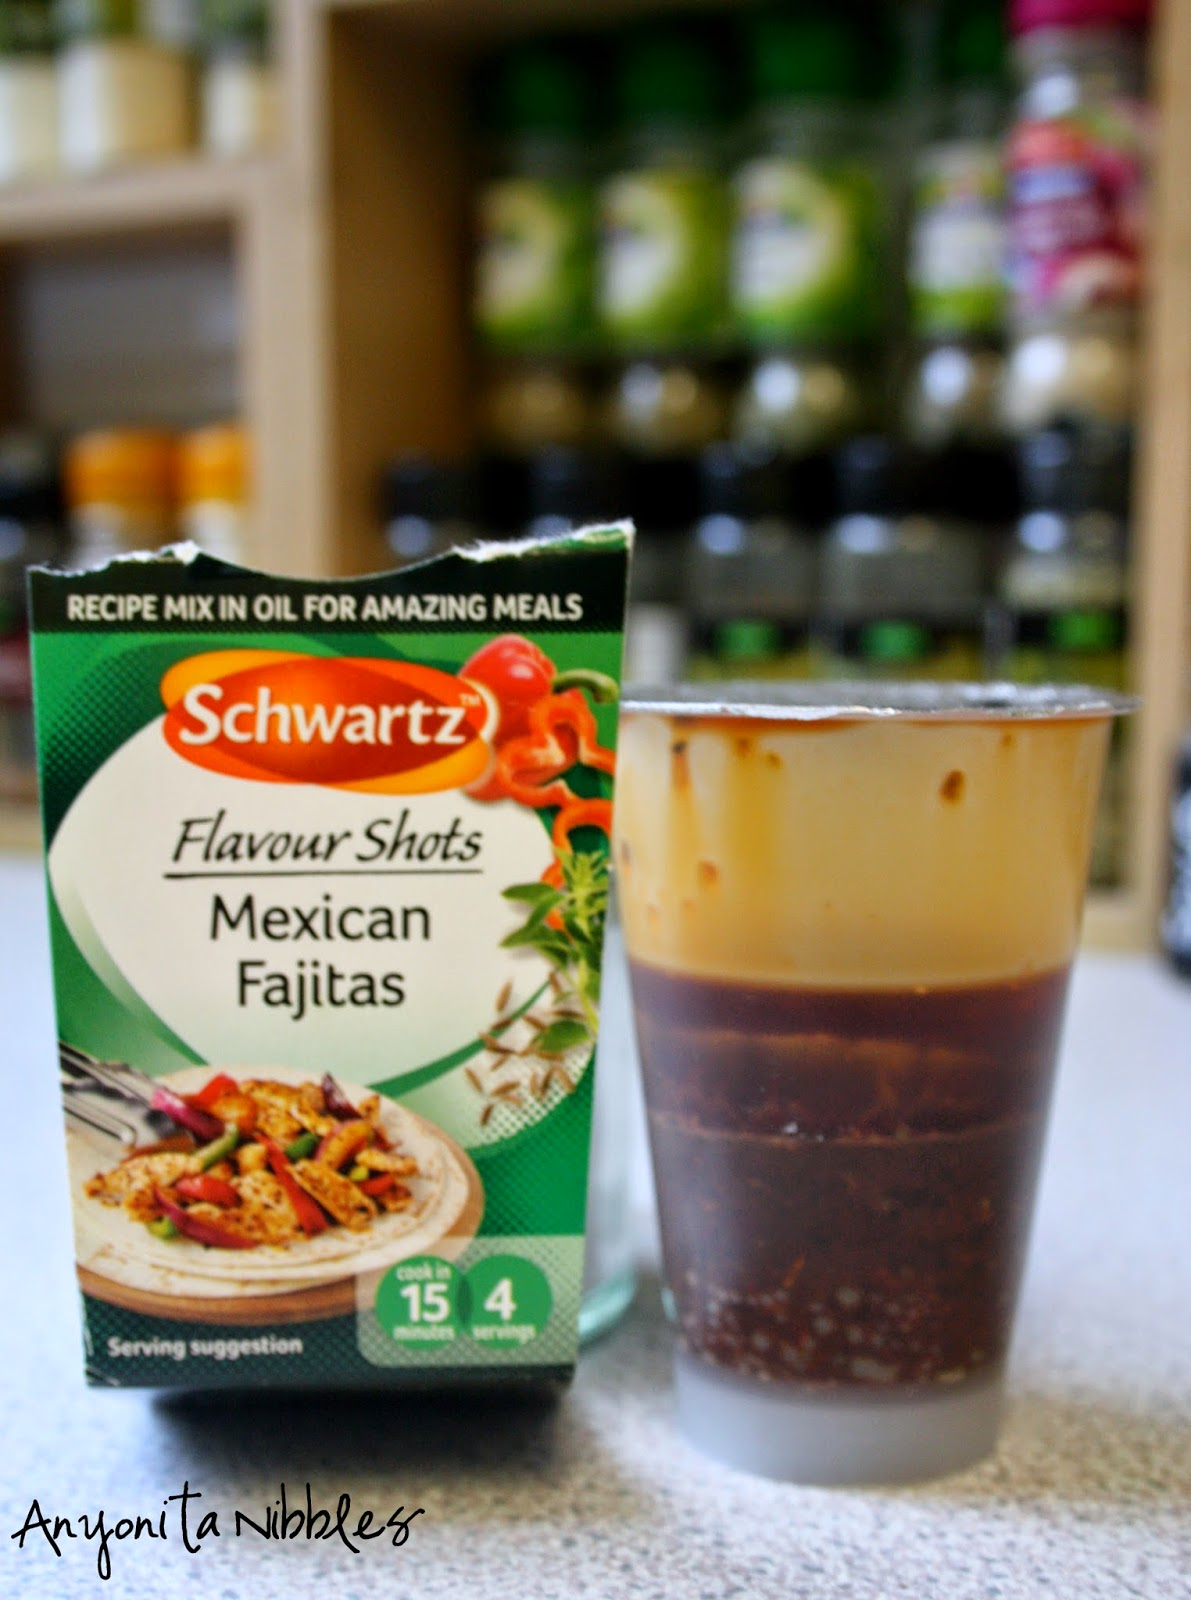 These Flavour Shots contain all the oil and spices you need for an authentic and tasty Mexican dinner